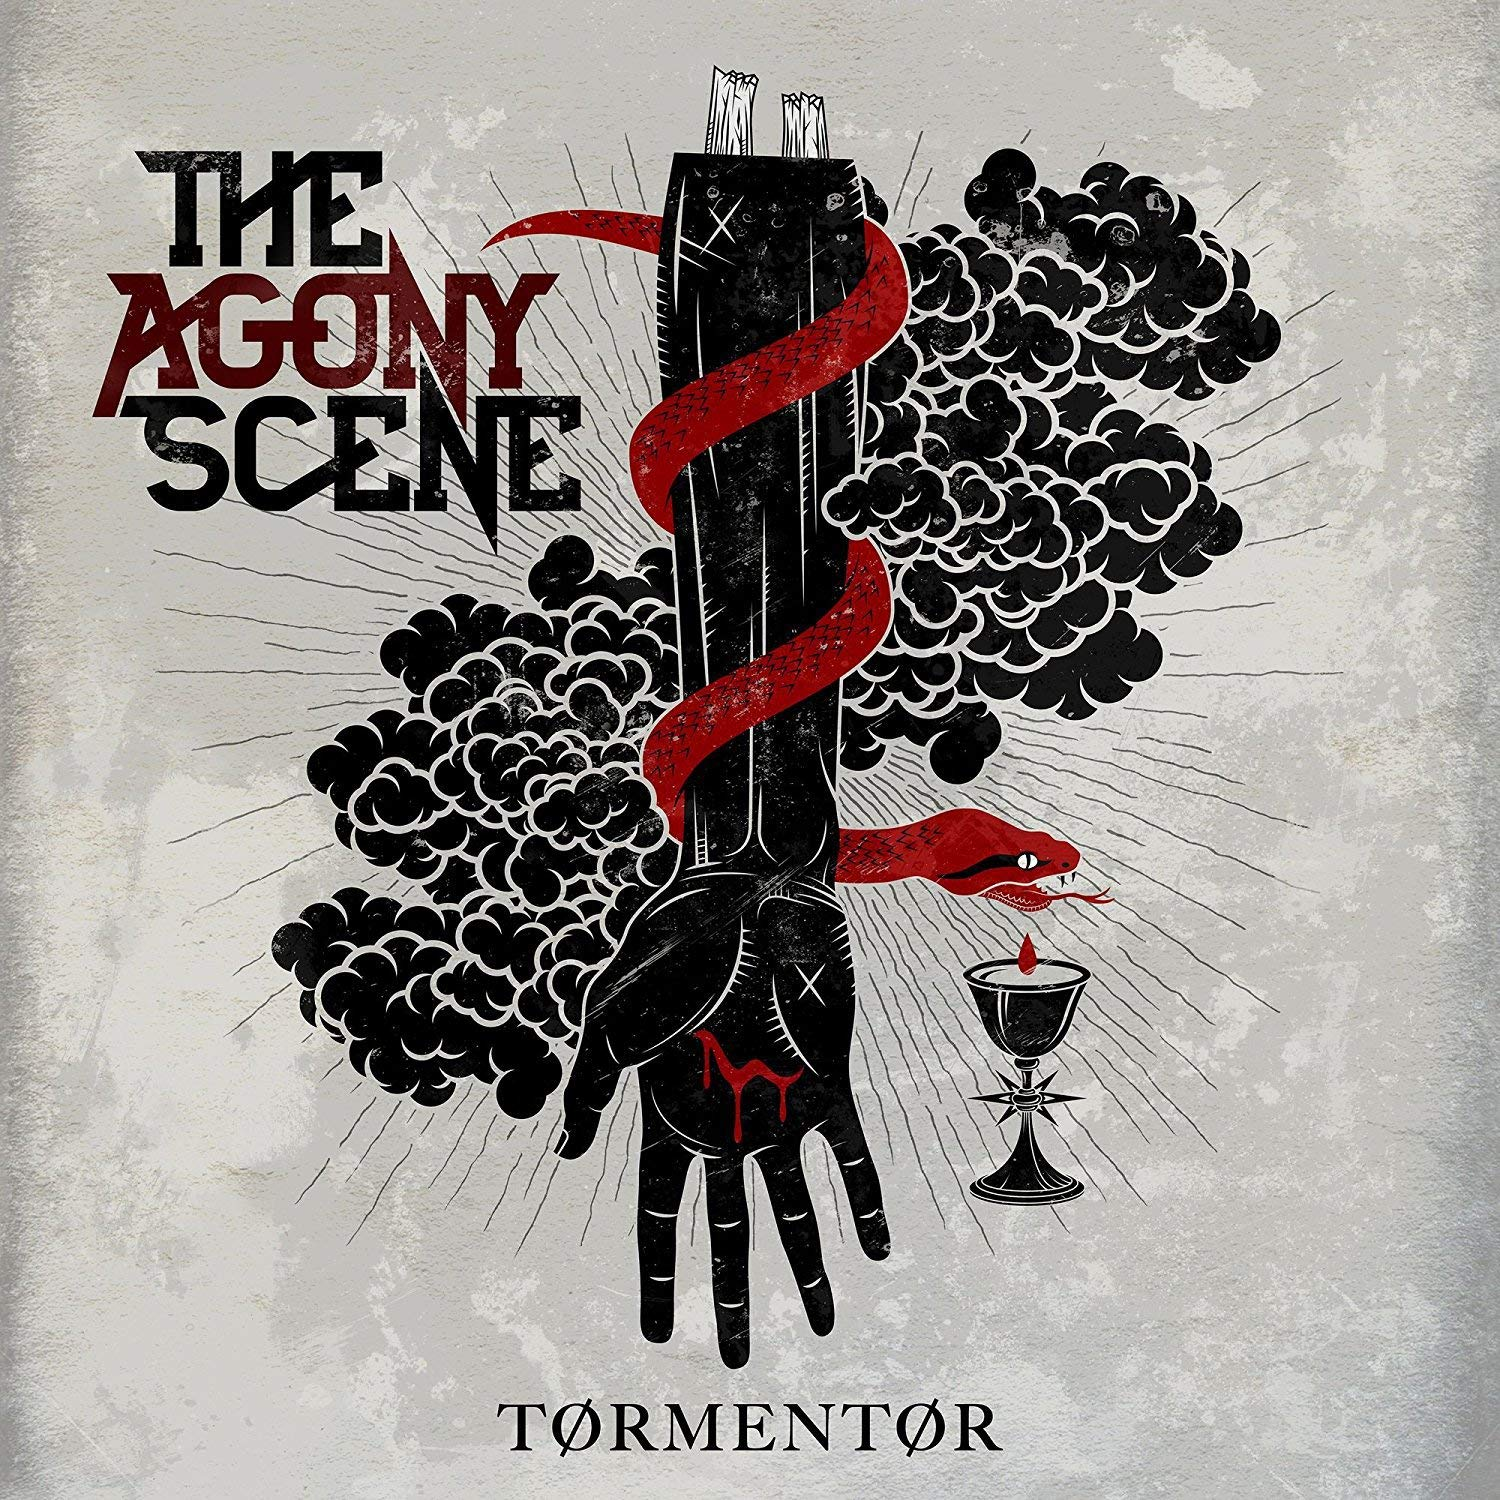 The Agony Scene - Tormentor [LP]